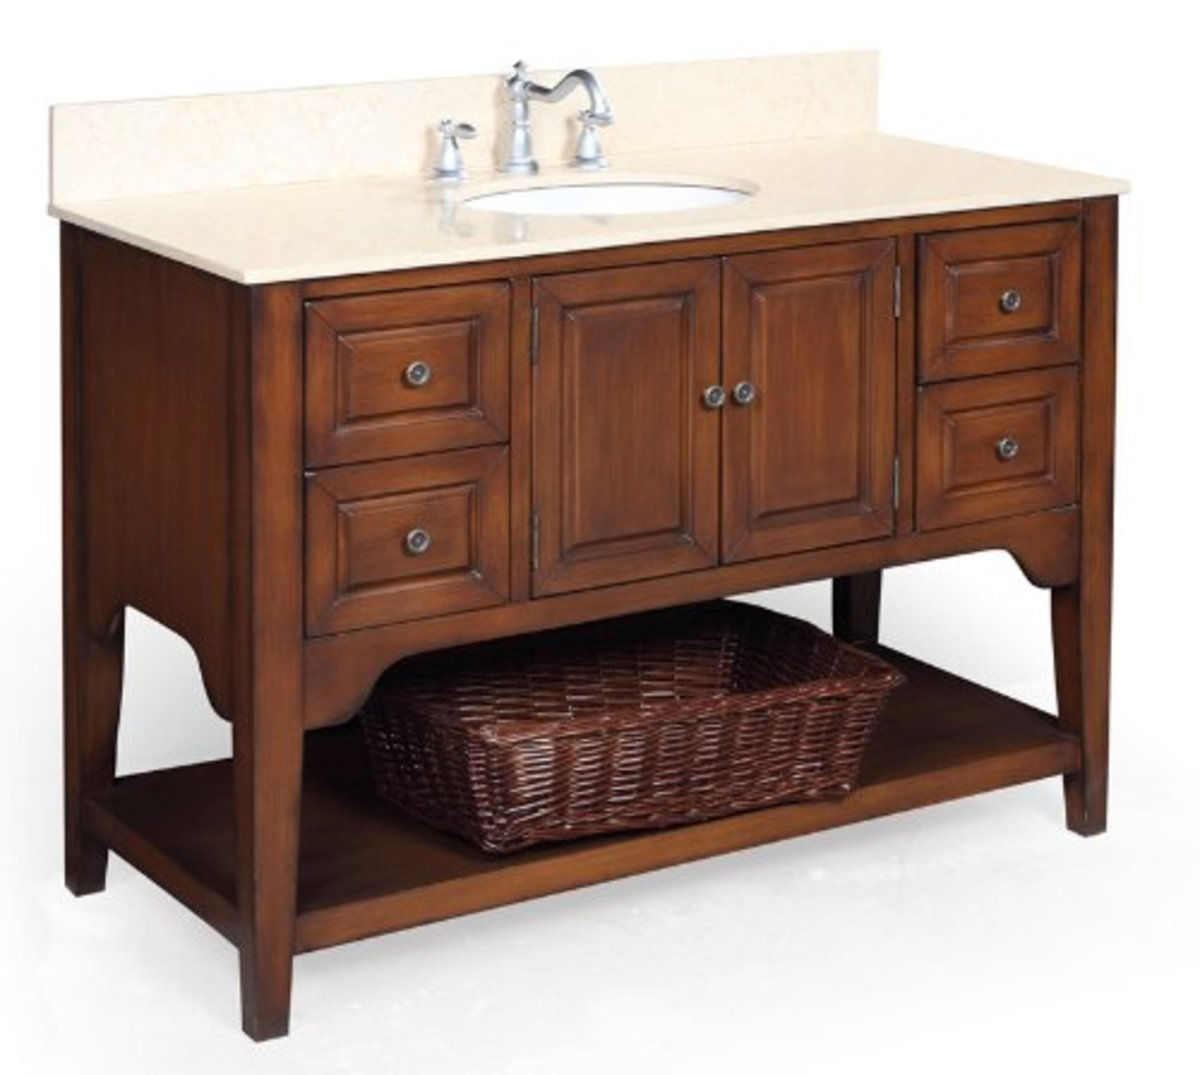 The Washington 48-inch Bathroom Vanity with Travertine Countertop, and a Ceramic Sink will blend in seamlesly in an authentic Craftsman style bathroom